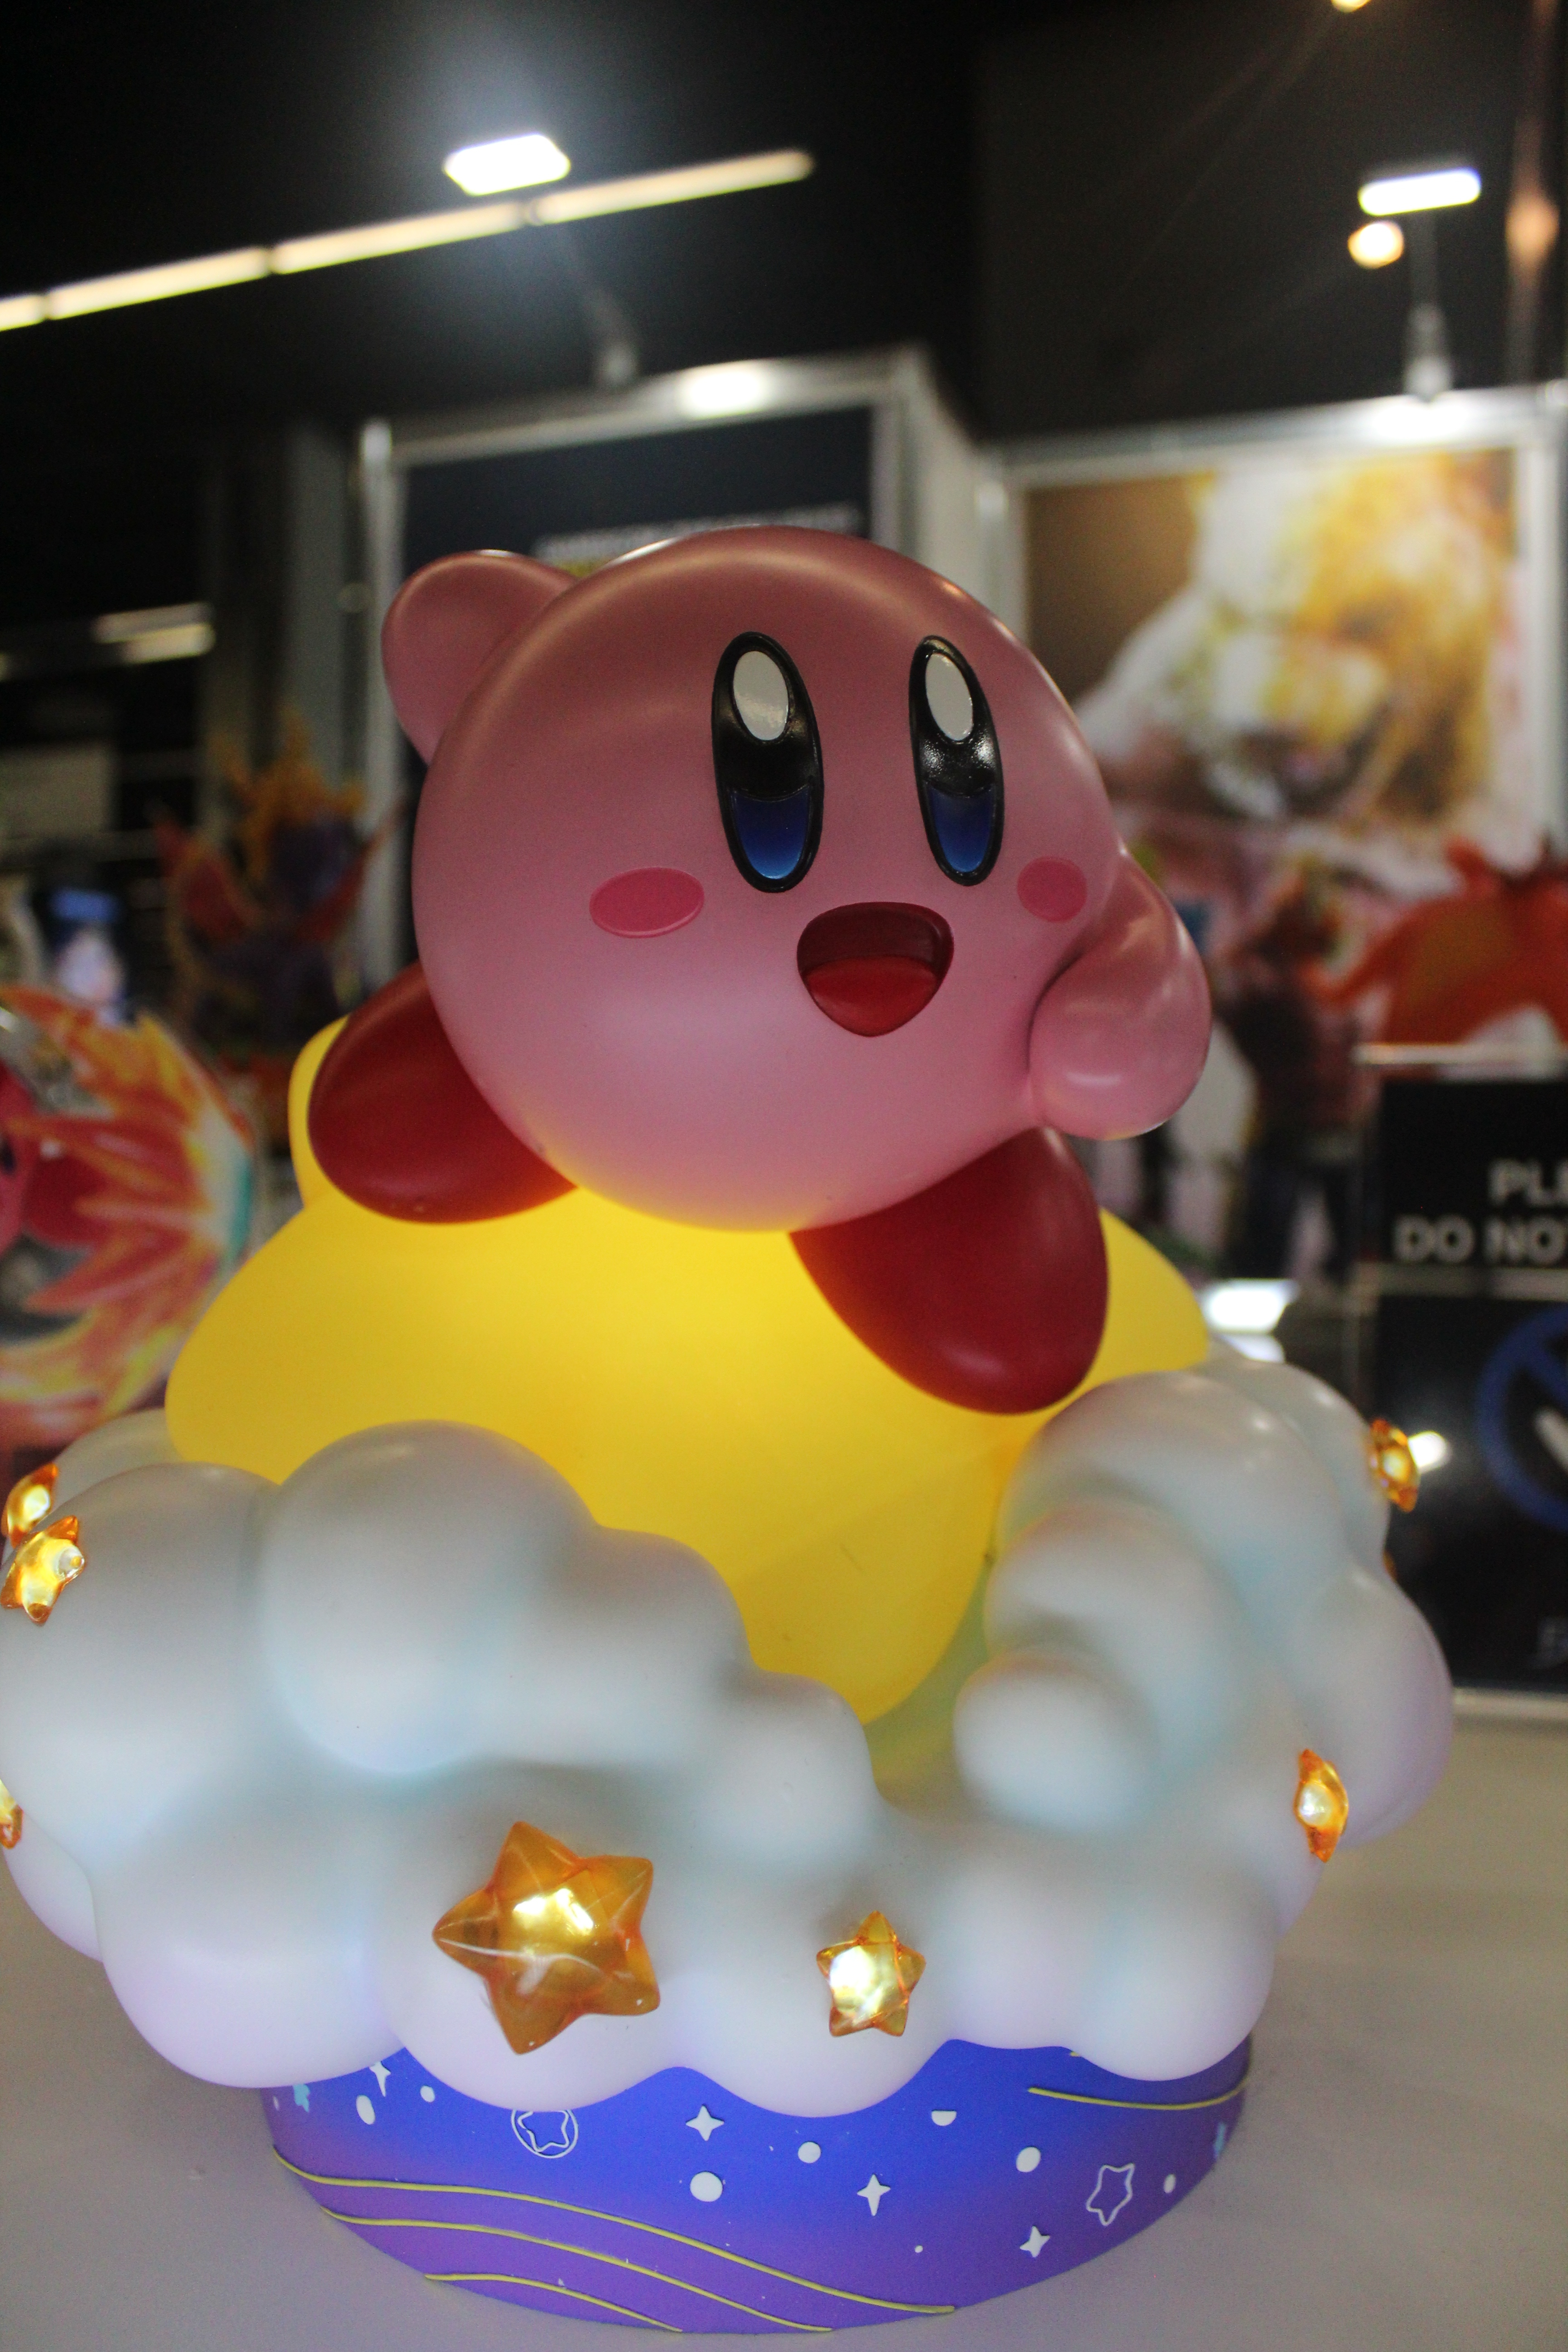 Kirby – Warp Star Kirby (Exclusive)